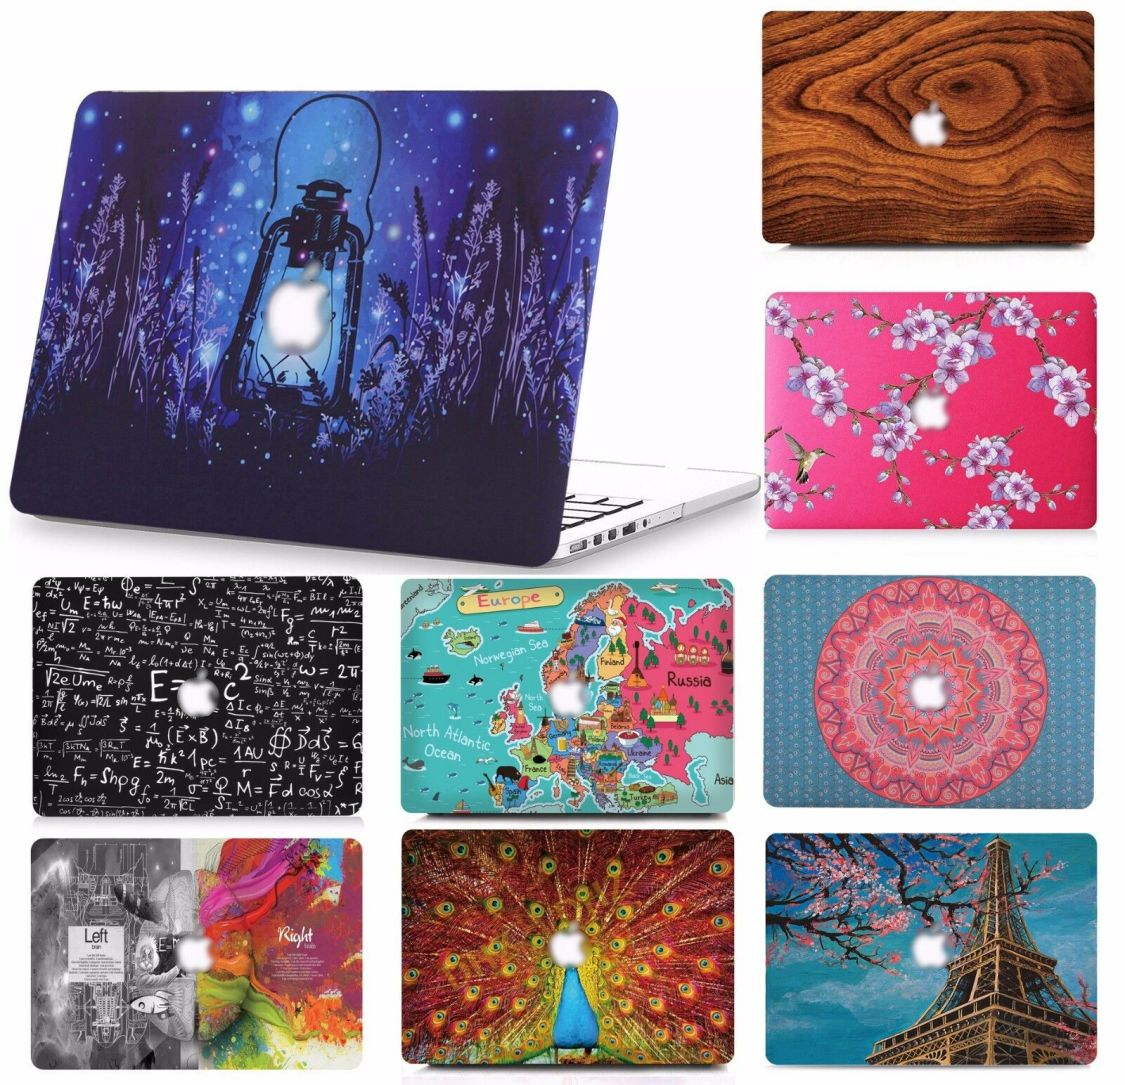 Laptop Hard Case Apple Macbook MAC BOOK Schutz Hülle Cover Schale Tasche Etui-MD